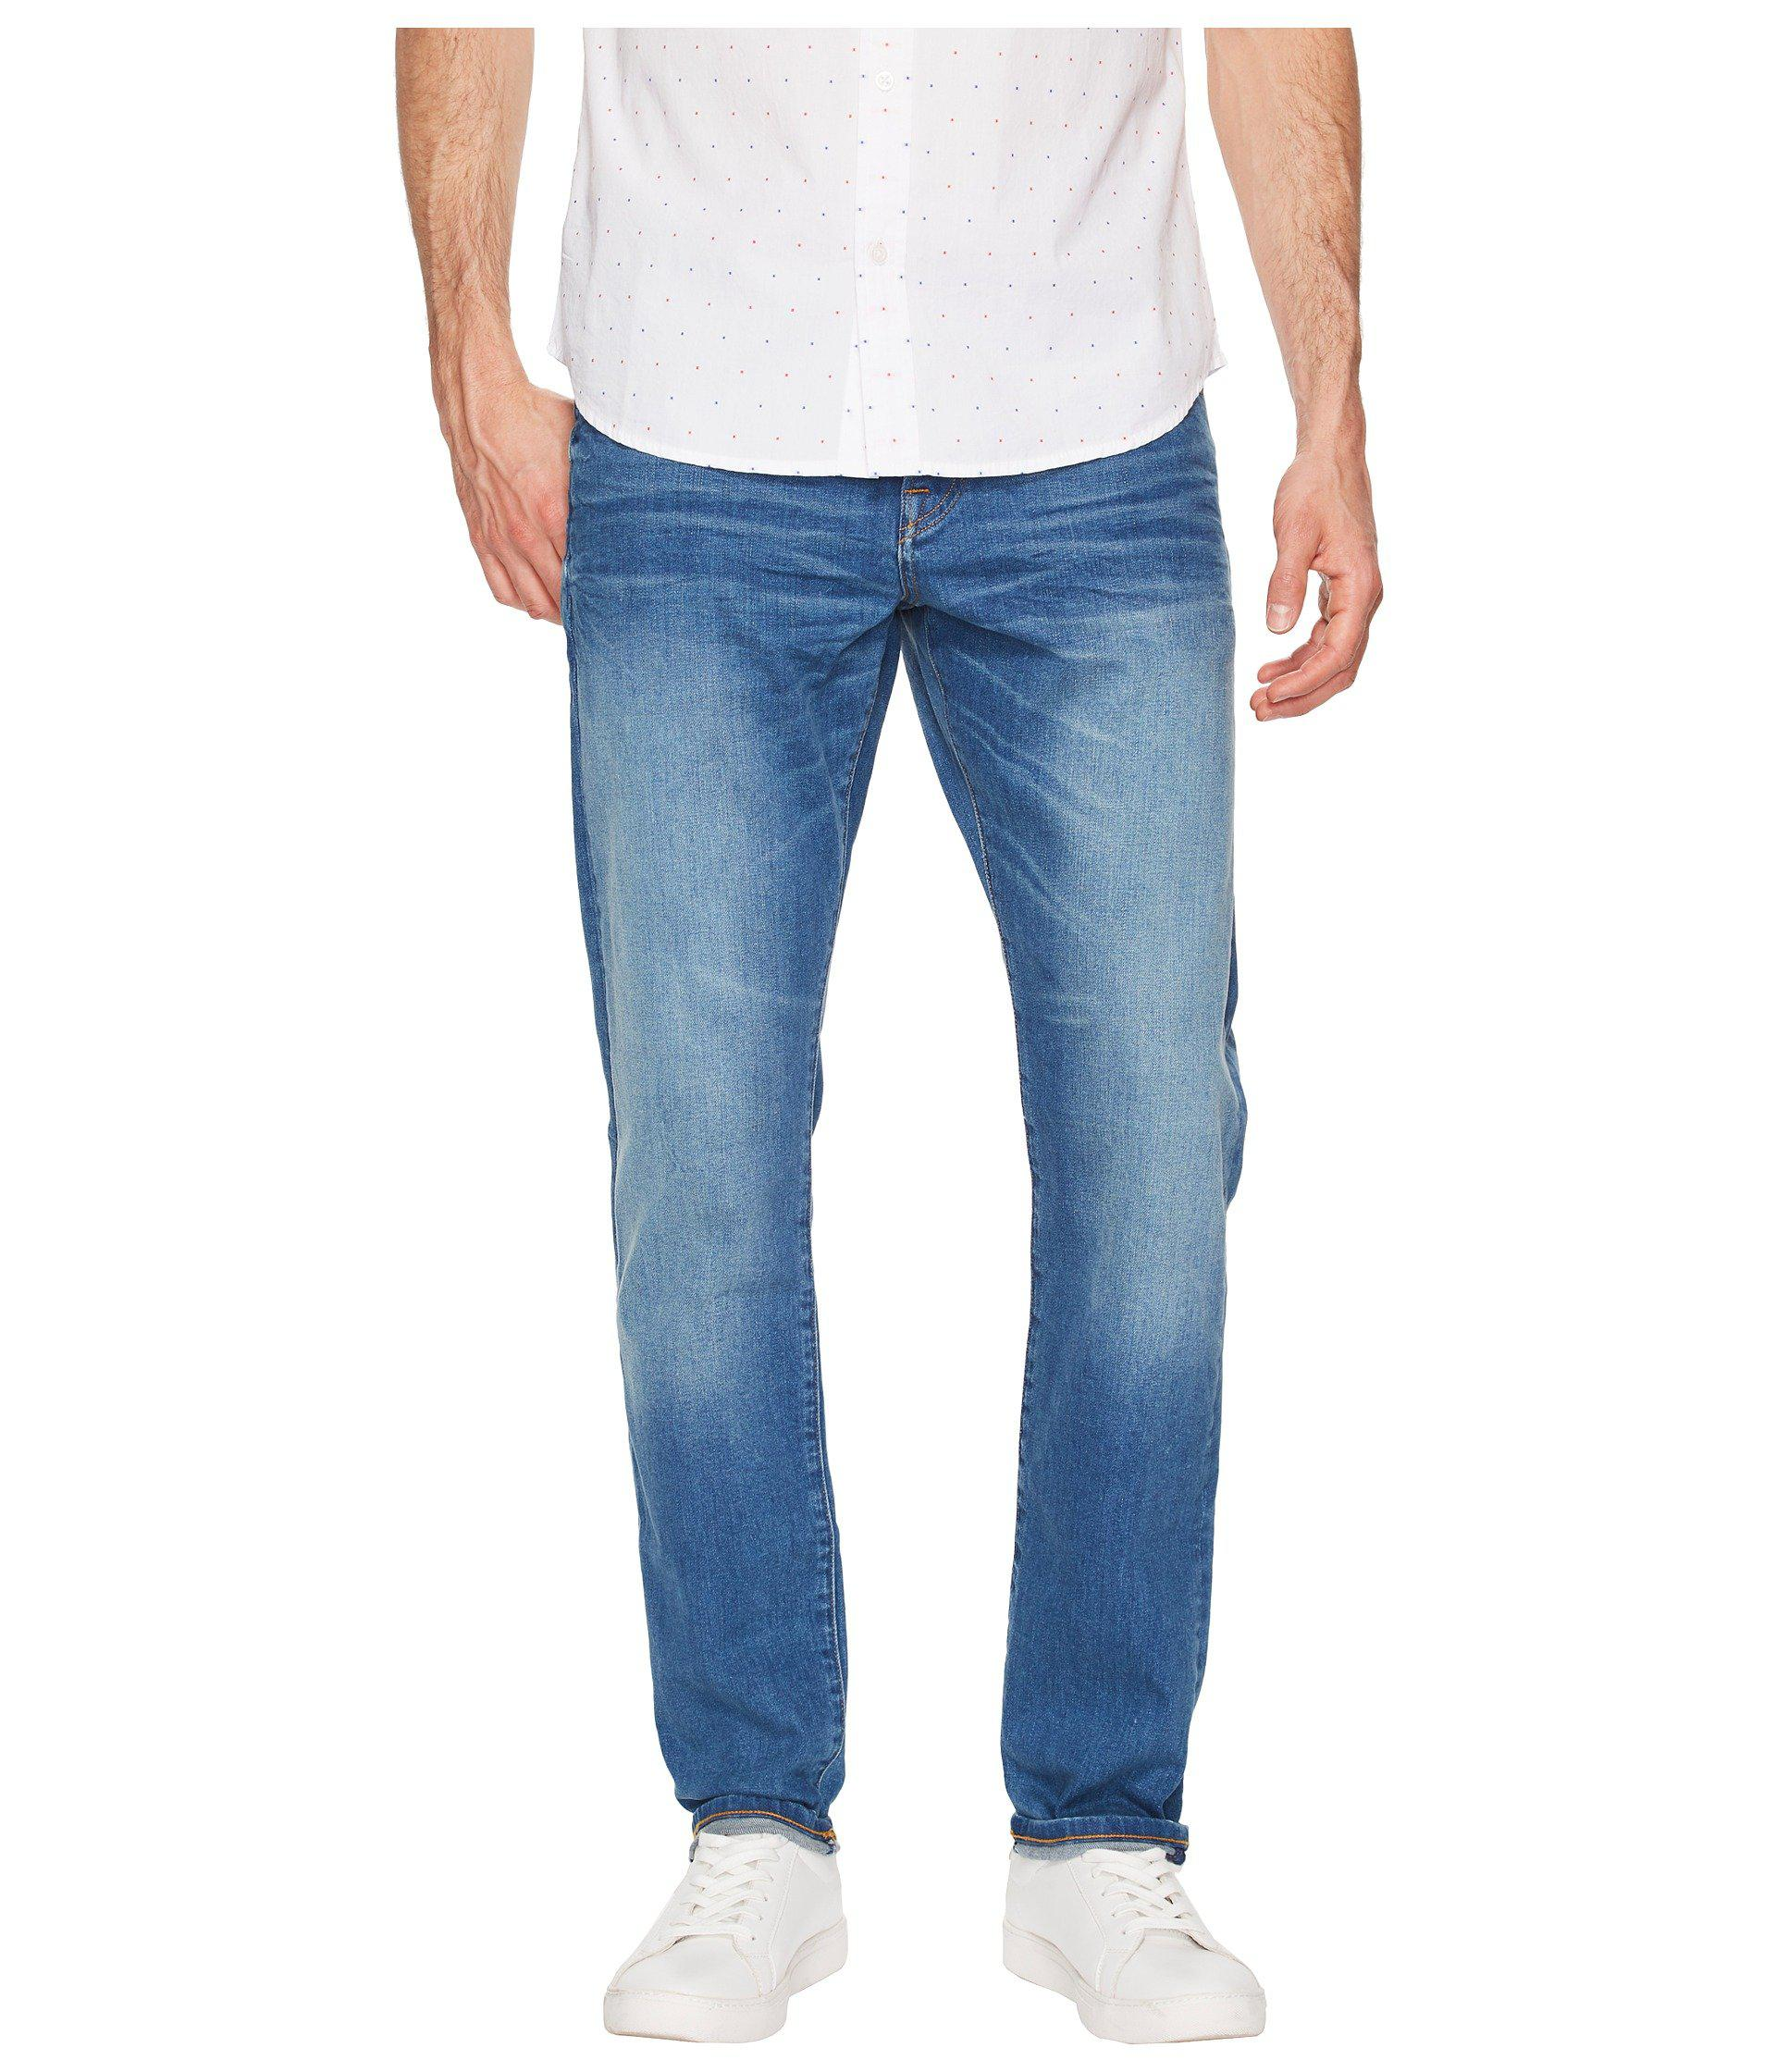 Mens Ralston-Seaboots Repair Slim Jeans Scotch & Soda Clearance Countdown Package 4xDuLhBwC